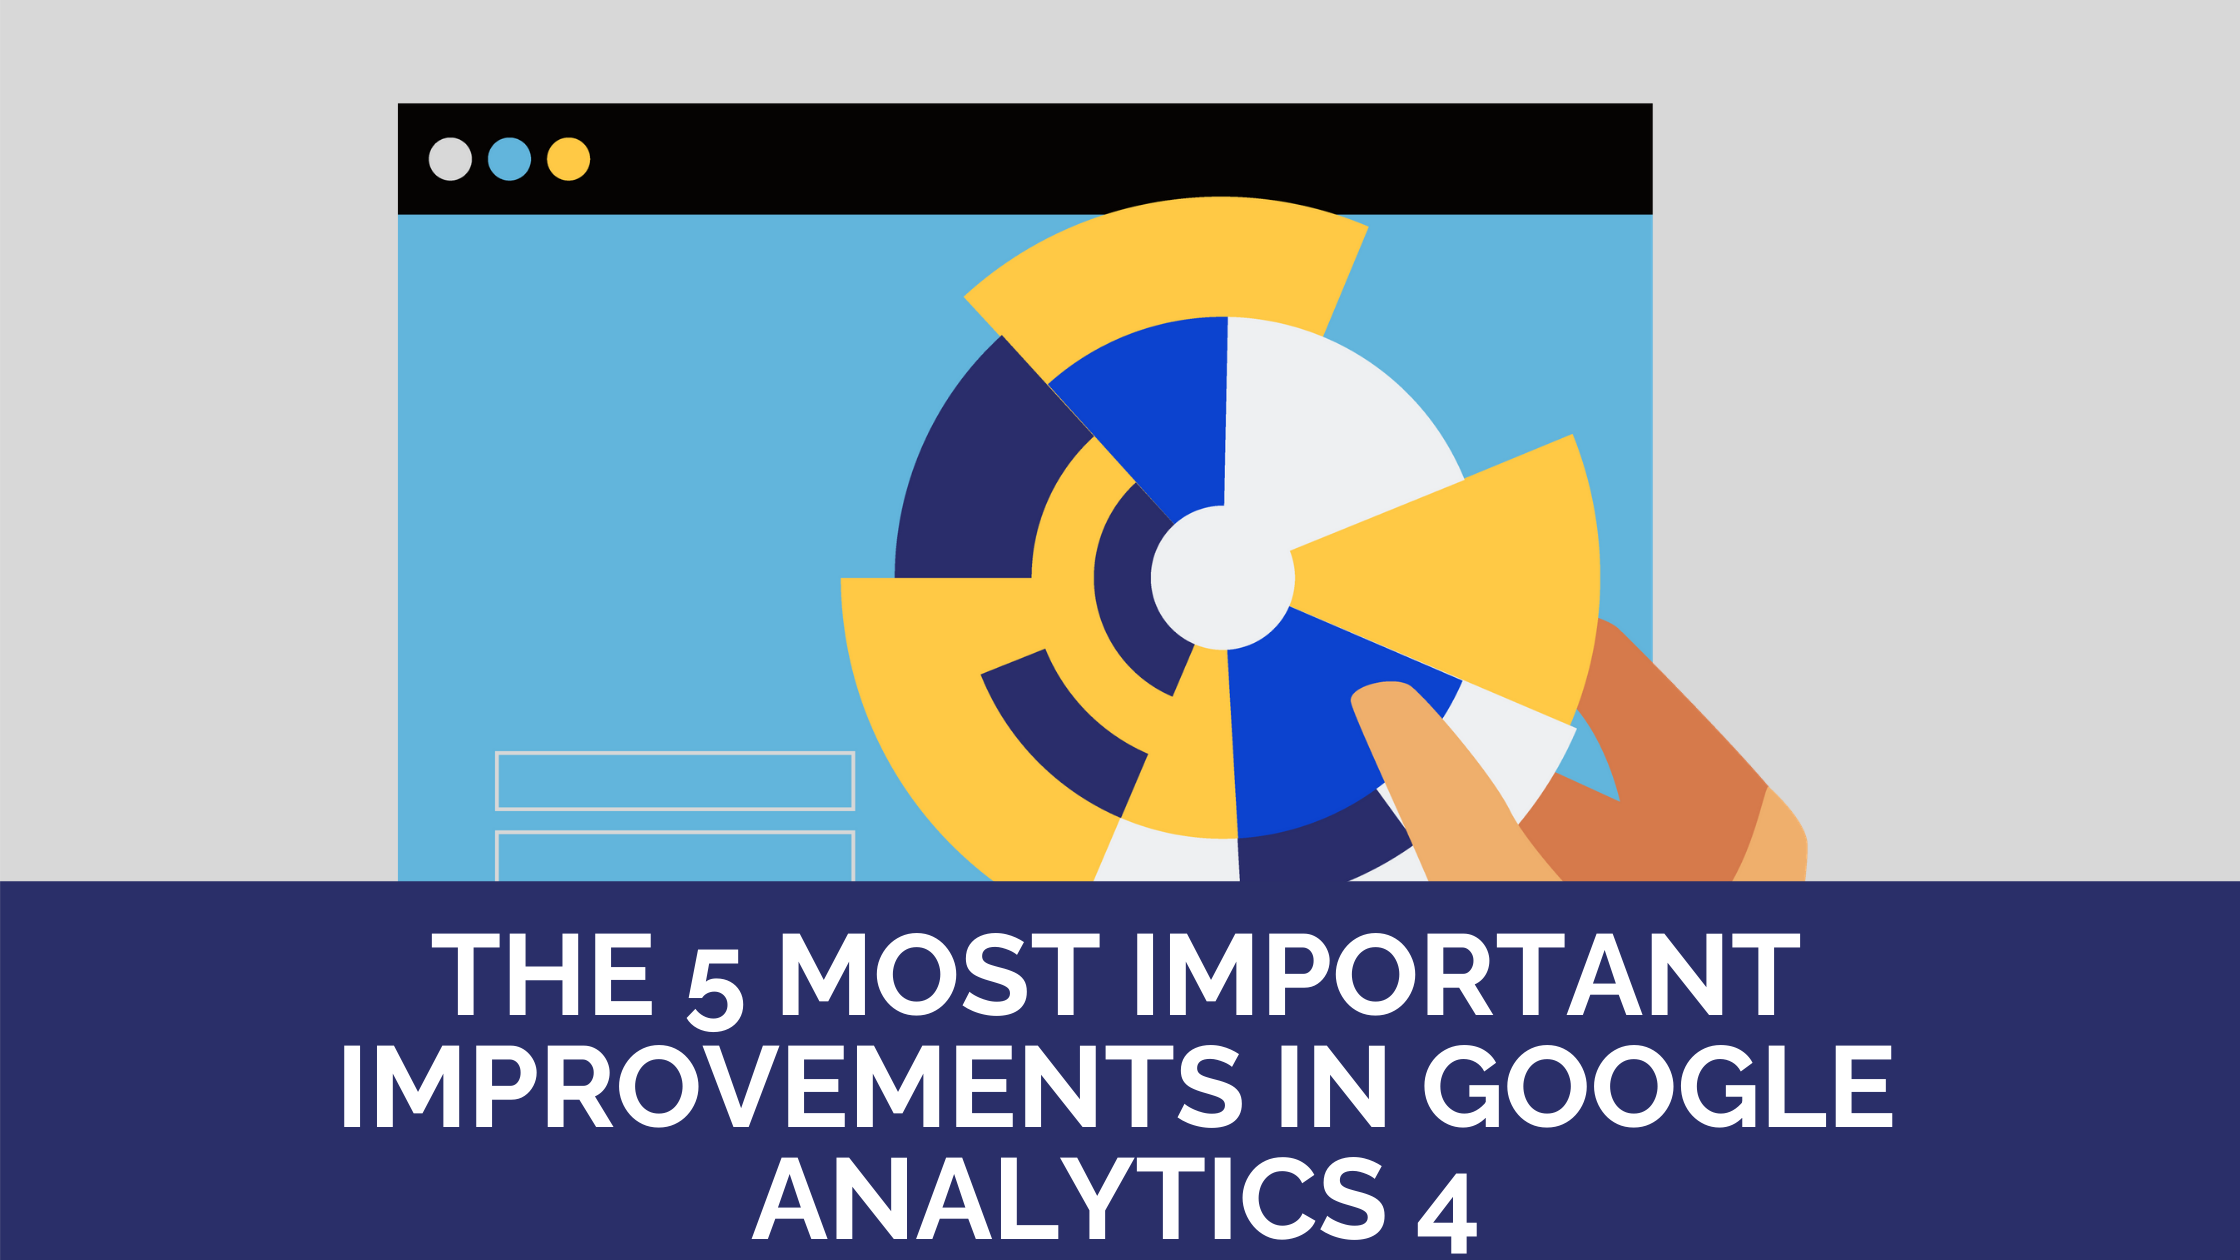 The 5 most important improvements in Google Analytics 4